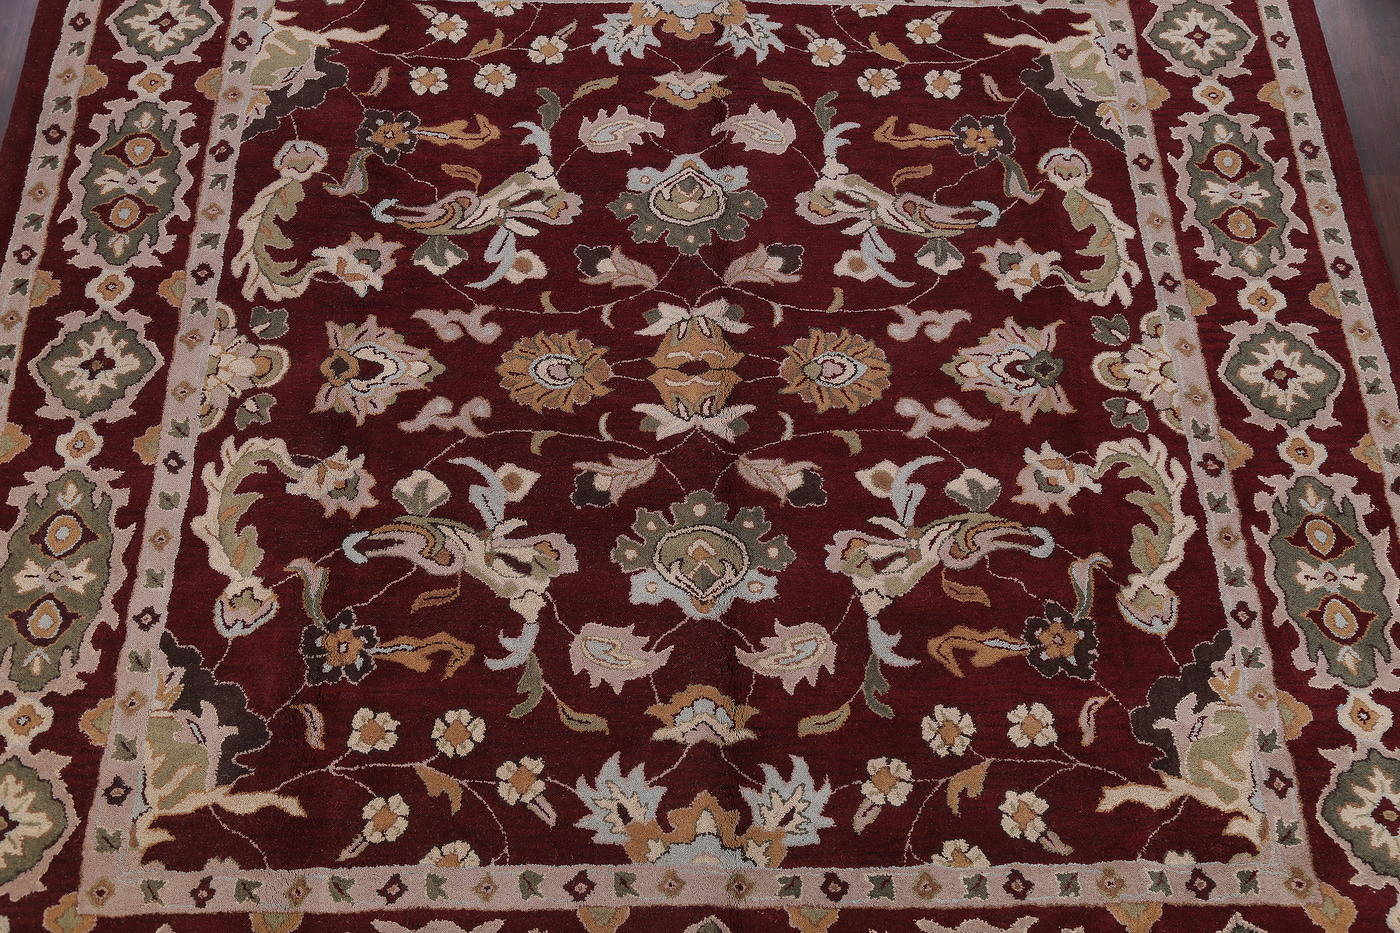 Hand-Tufted Floral Burgundy Square Oushak Oriental Area Rug 12x12